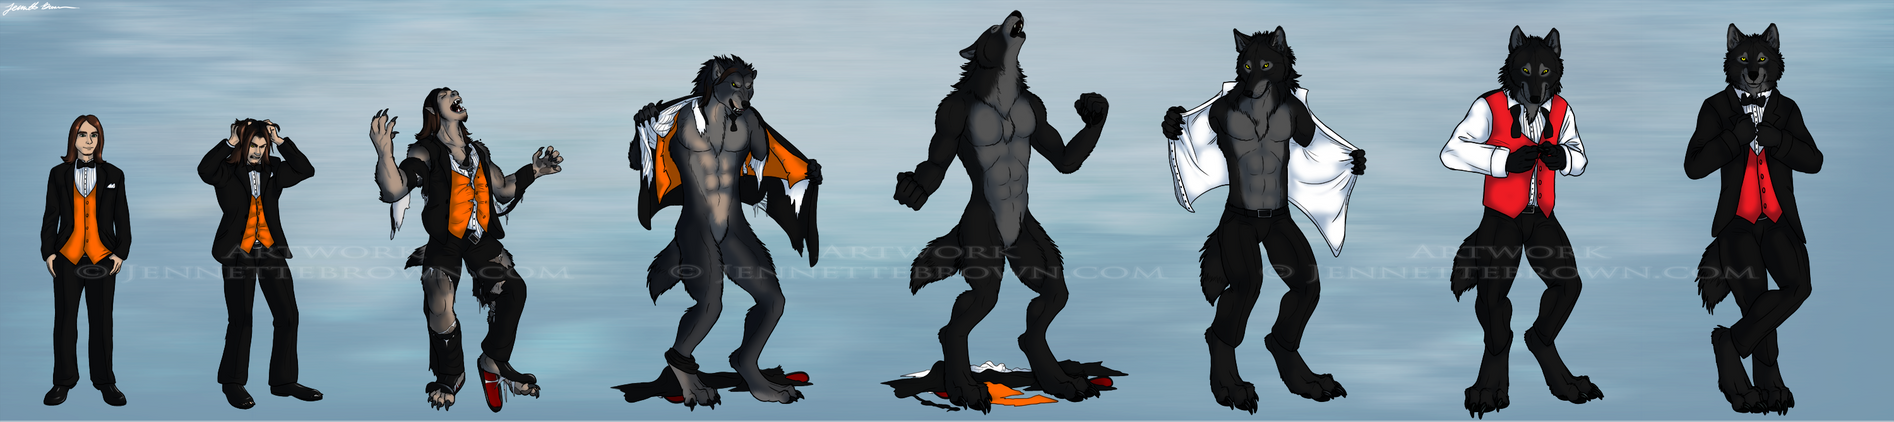 TuxedoWerewolf Transformation Sequence by sugarpoultry